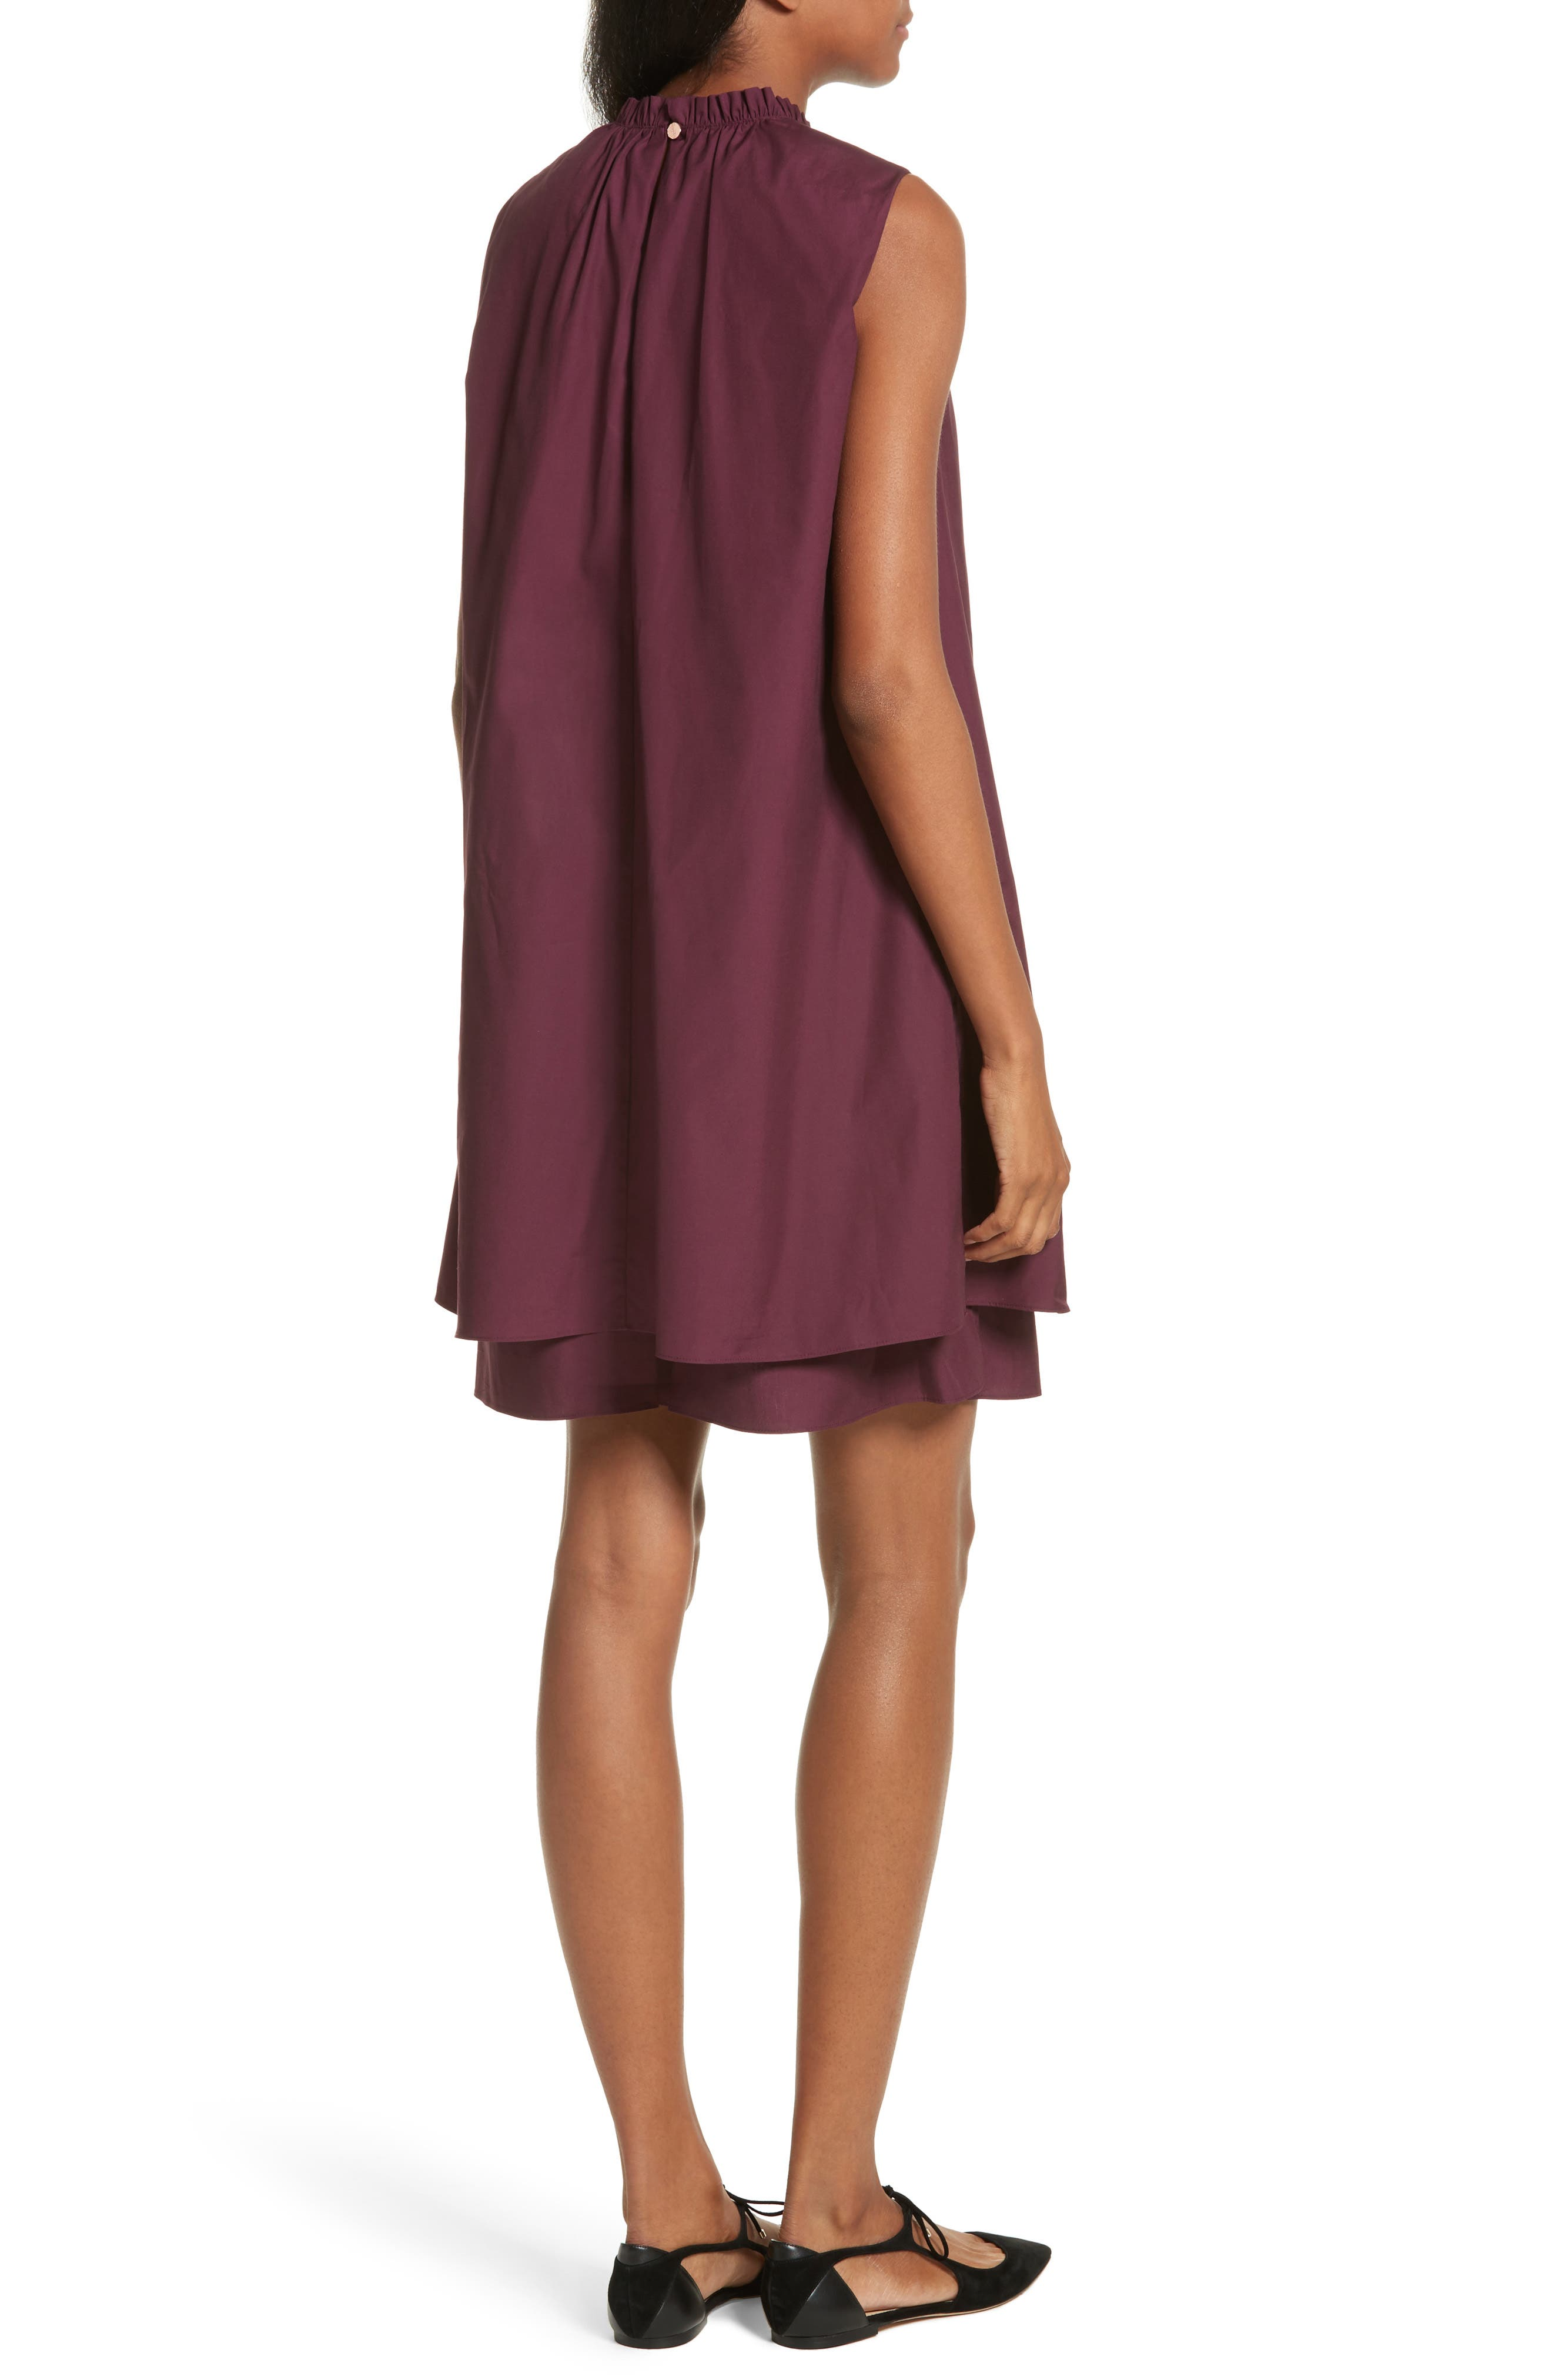 Ezmay Tiered Shift Dress,                             Alternate thumbnail 2, color,                             930